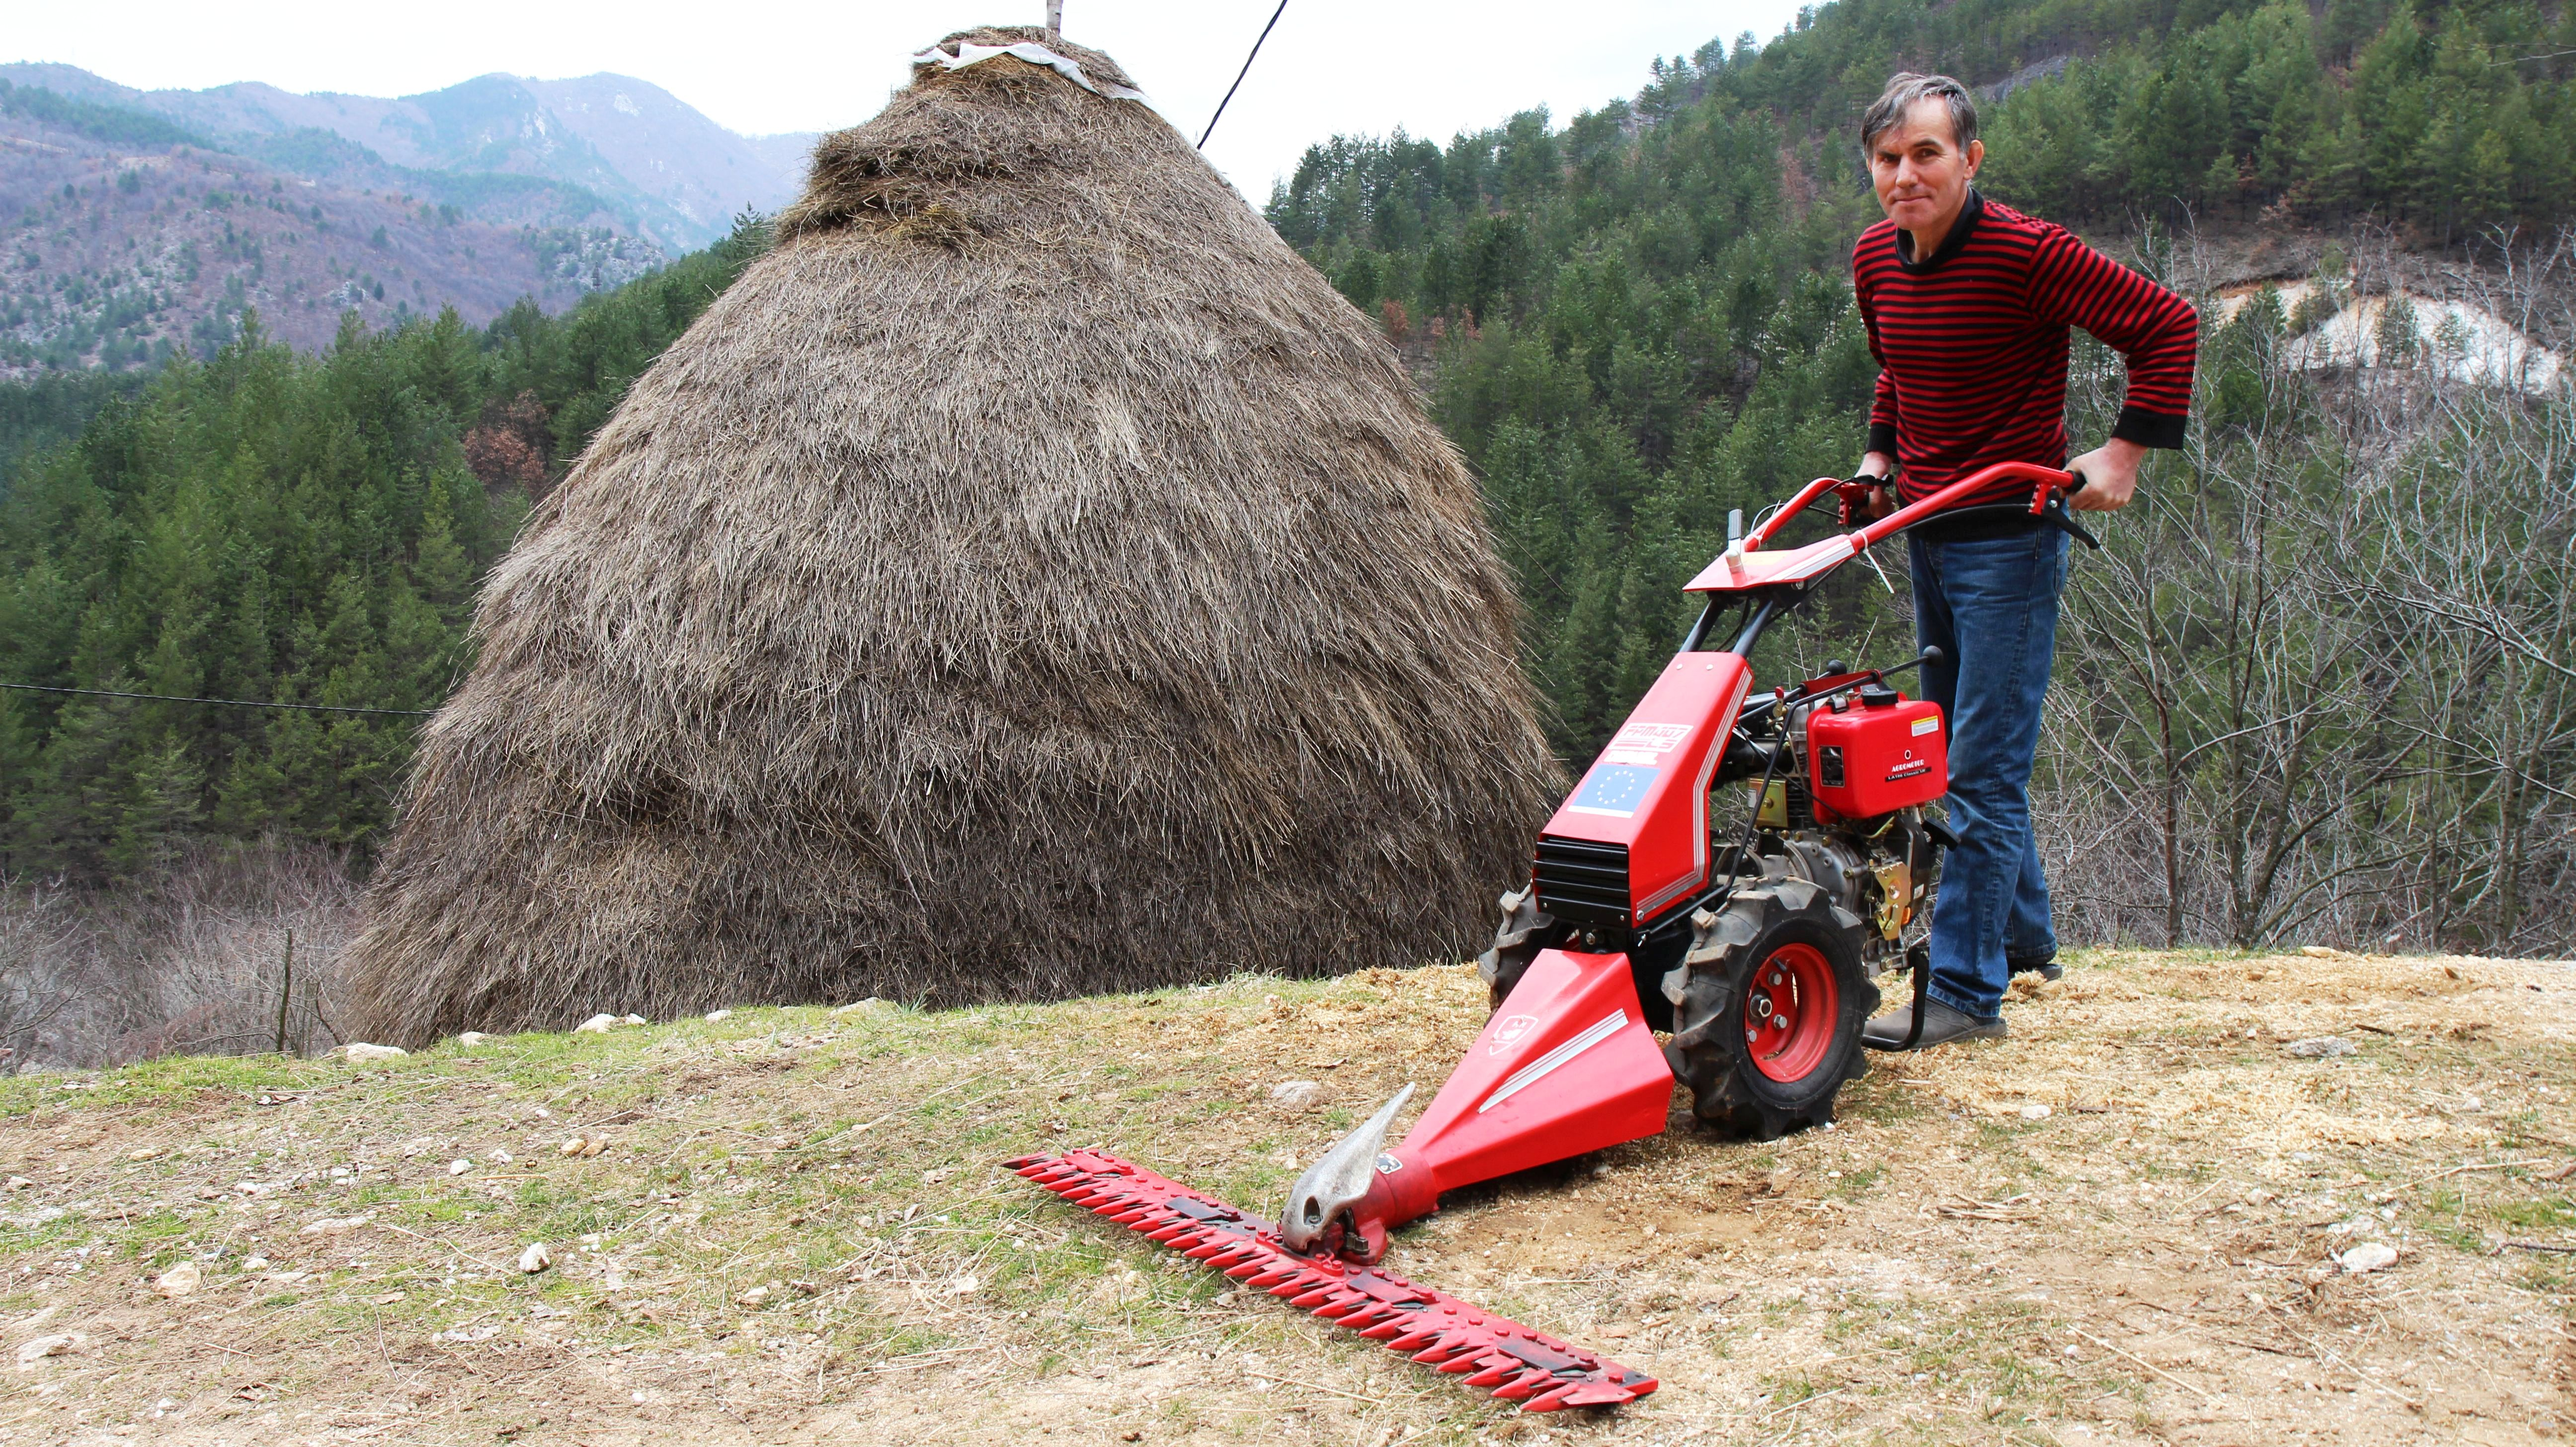 Vahid reasembled the mower and it works!